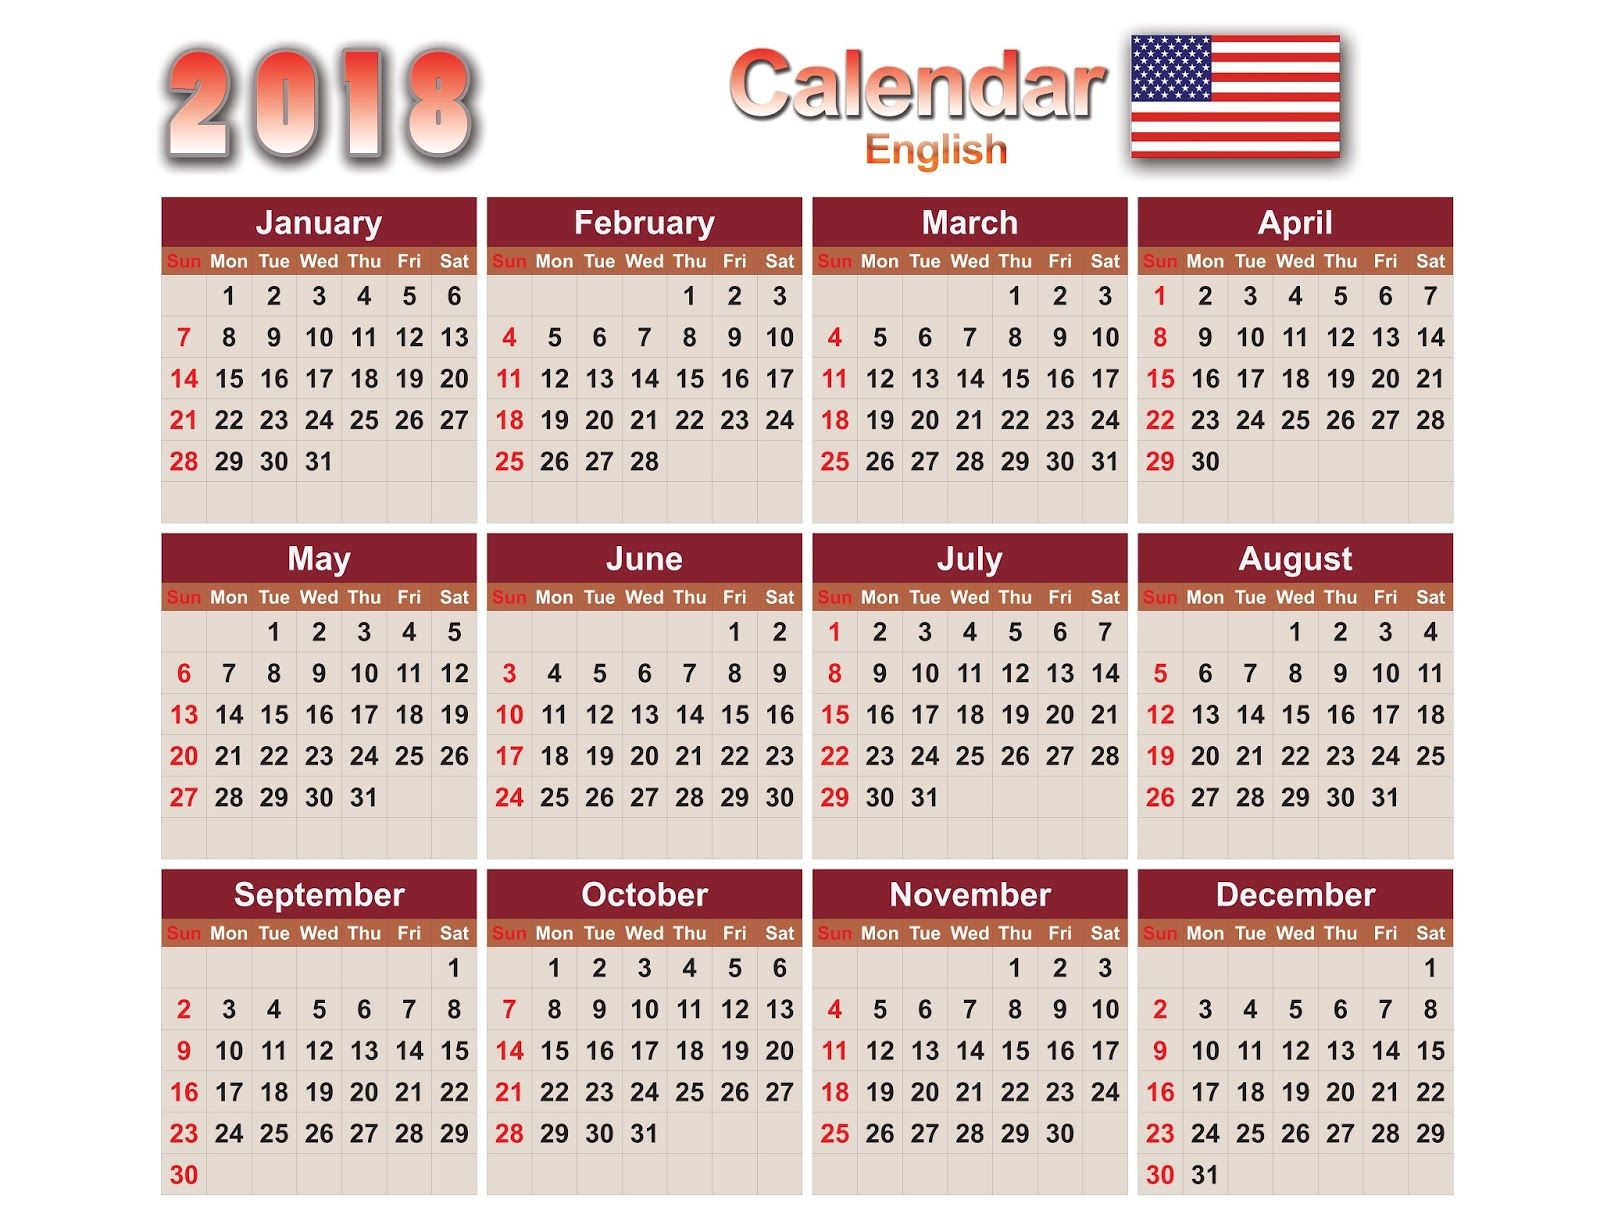 Calendars 2018 English Eps,Ai,Cdr,PSD,PNG e PDF Vector Calendar ...